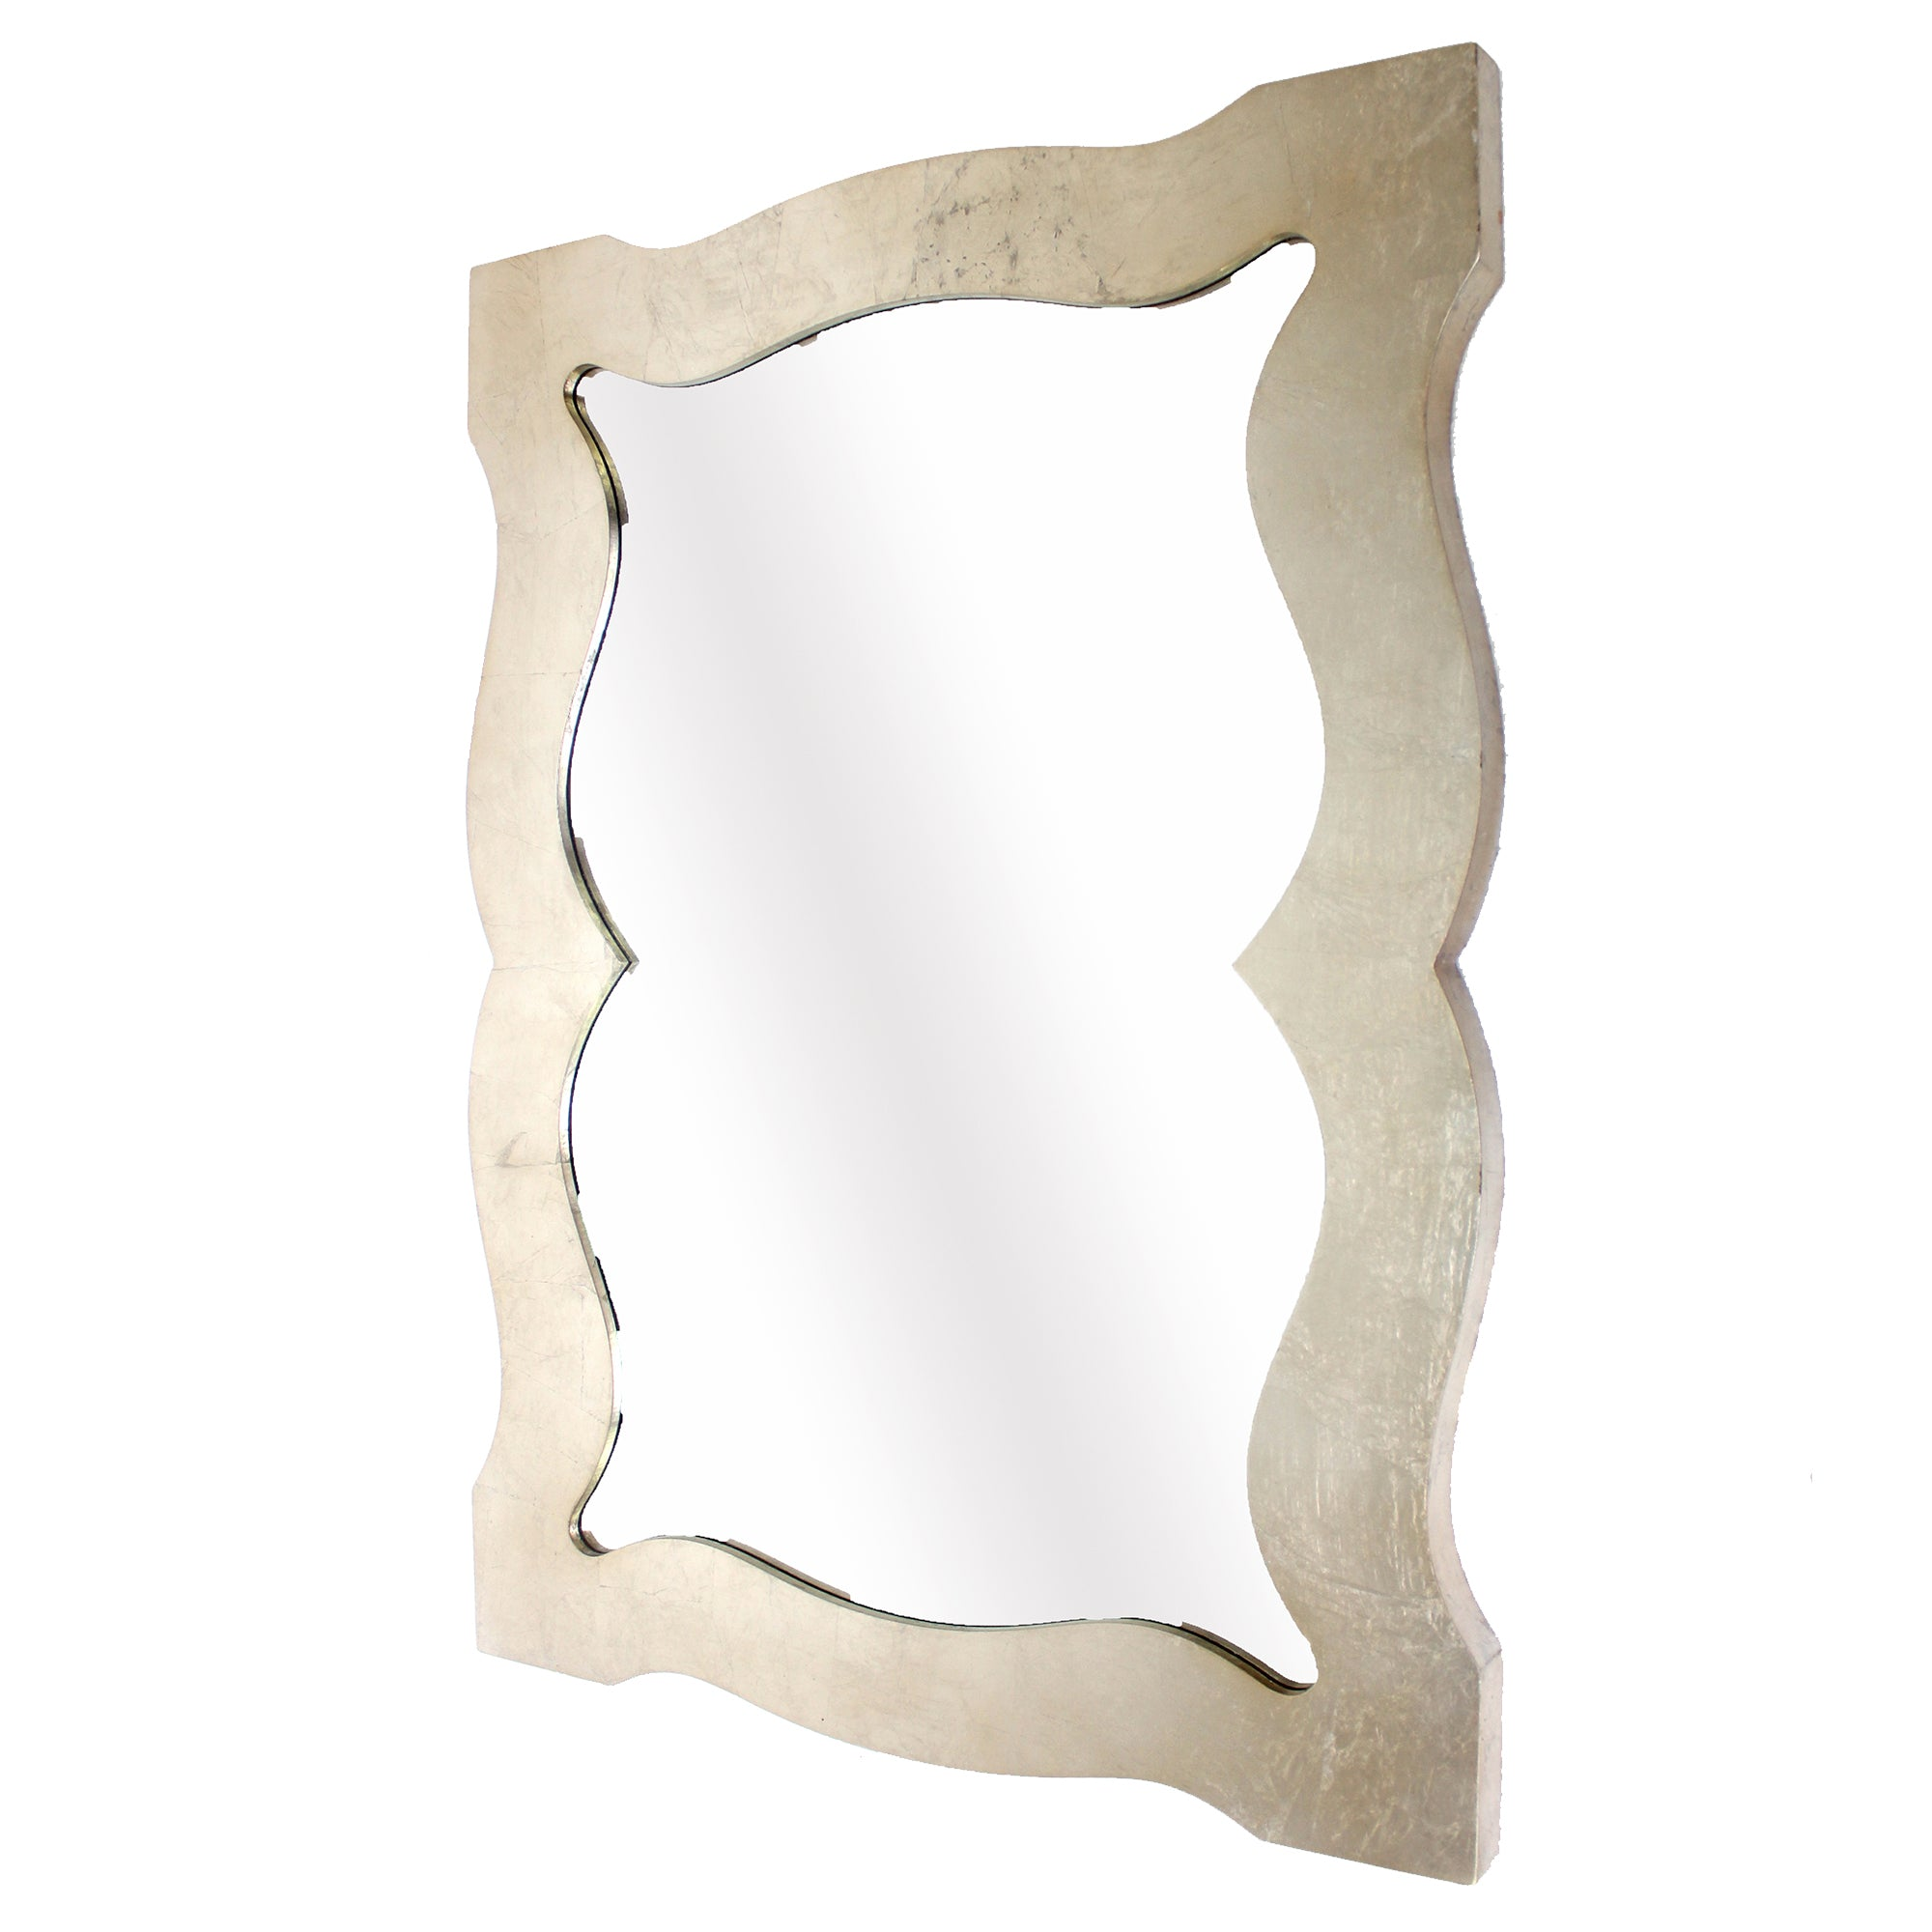 "40"" x 30"" x 1.5"" Silver/Gold Wooden Frame - Cosmetic Mirror"